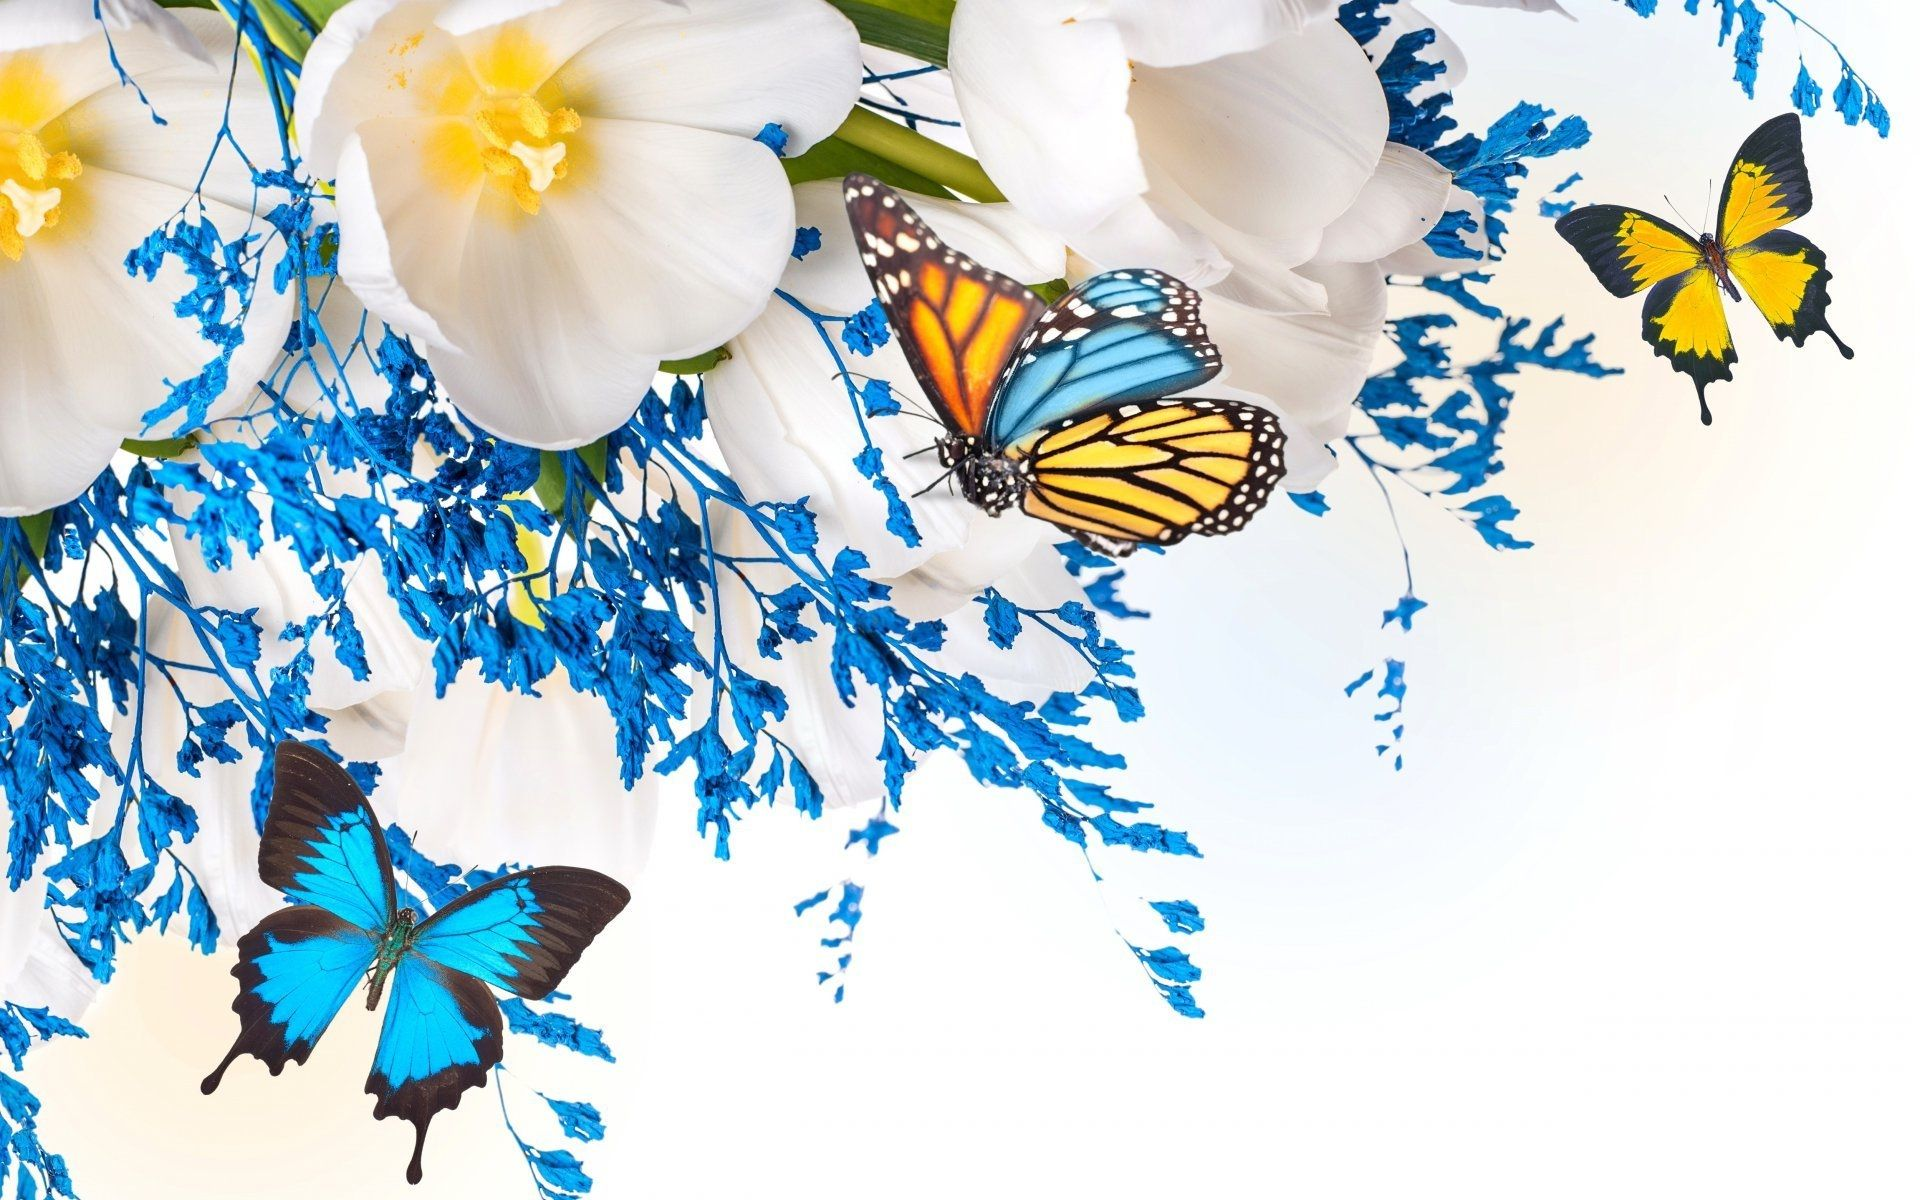 Hd Images Of Flowers And Butterflies